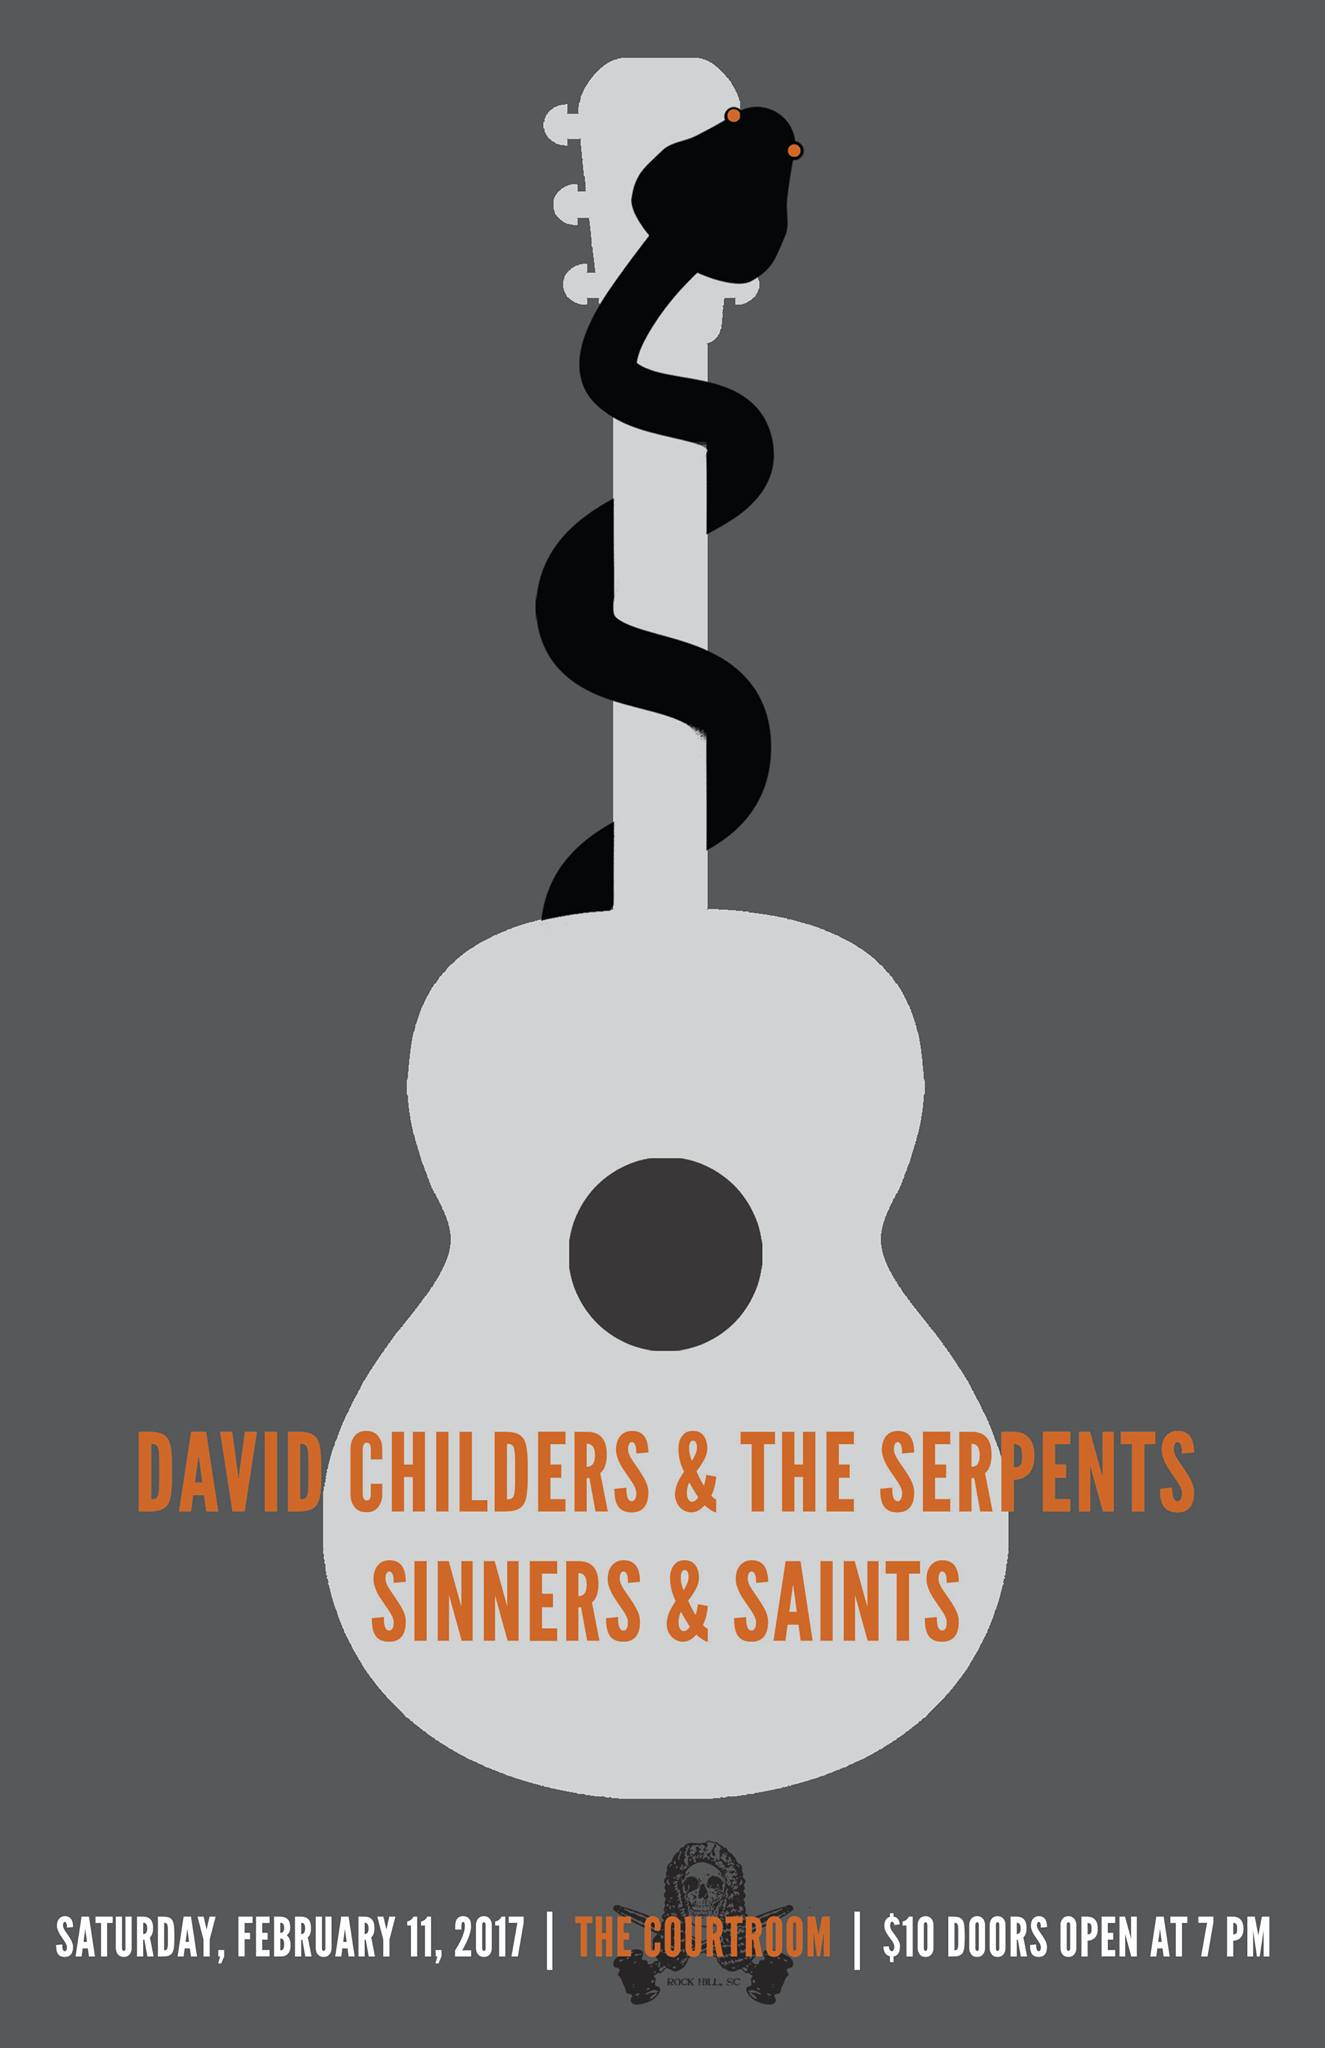 Sinners & Saints at Courtroom with David Childers